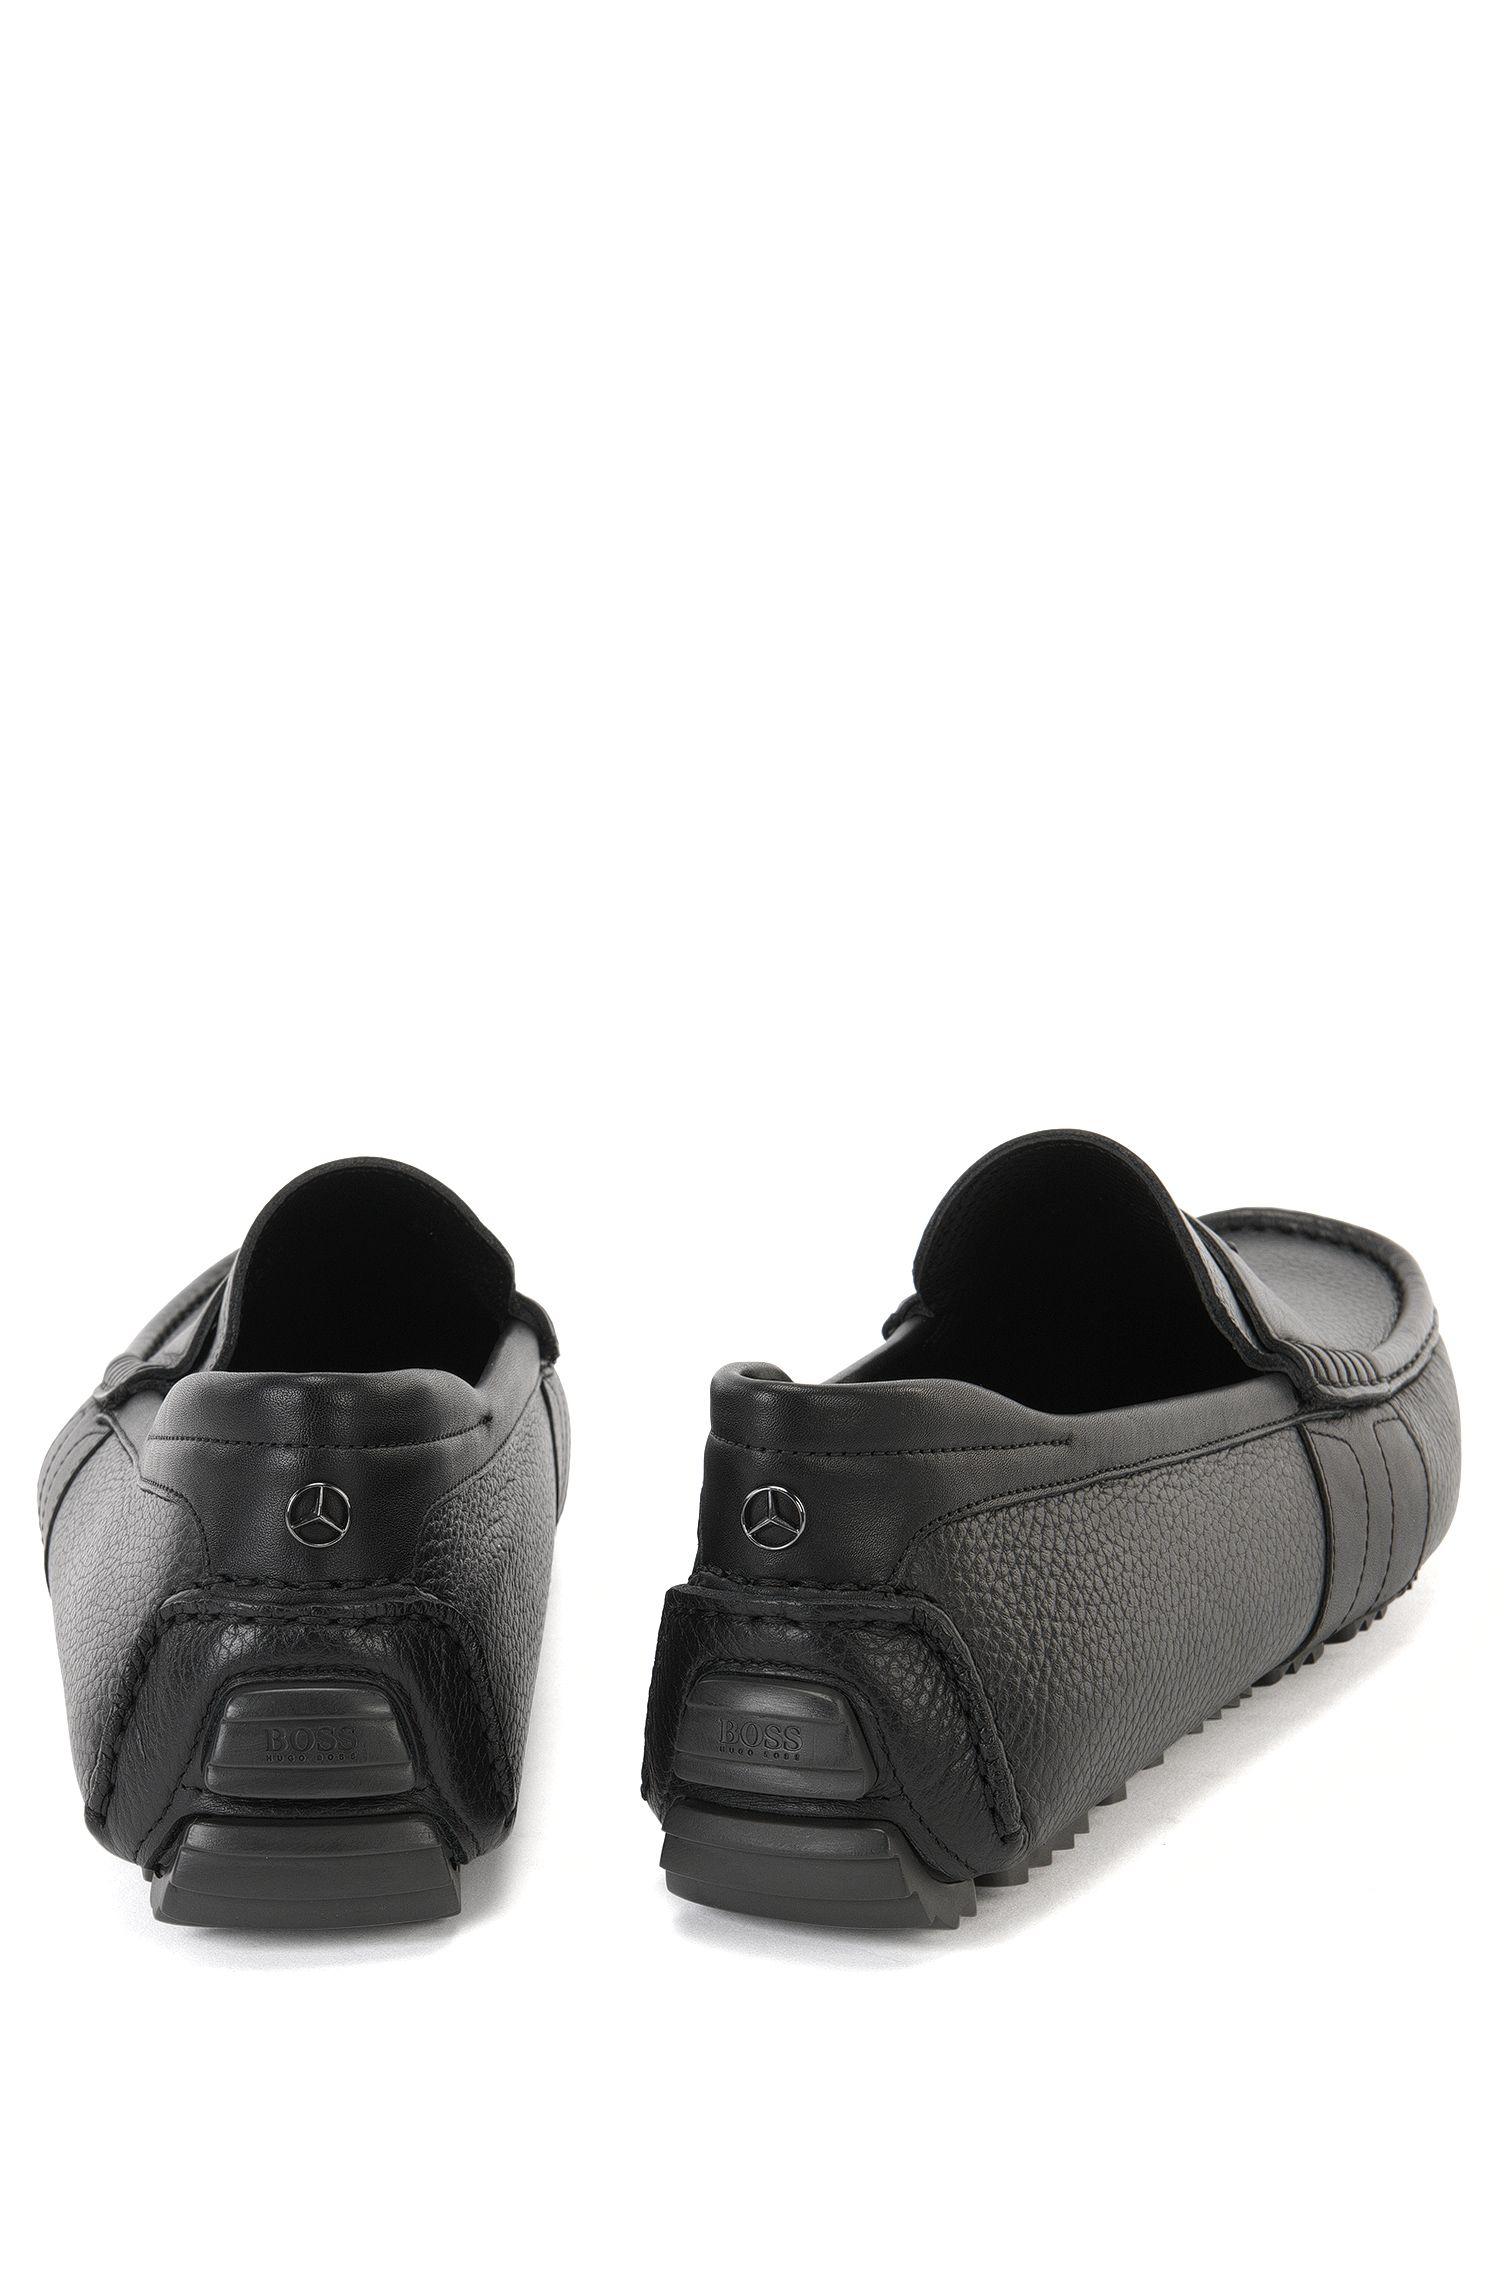 Mercedes-Benz Italian Leather Driving Loafer | Driver Mocc Gr